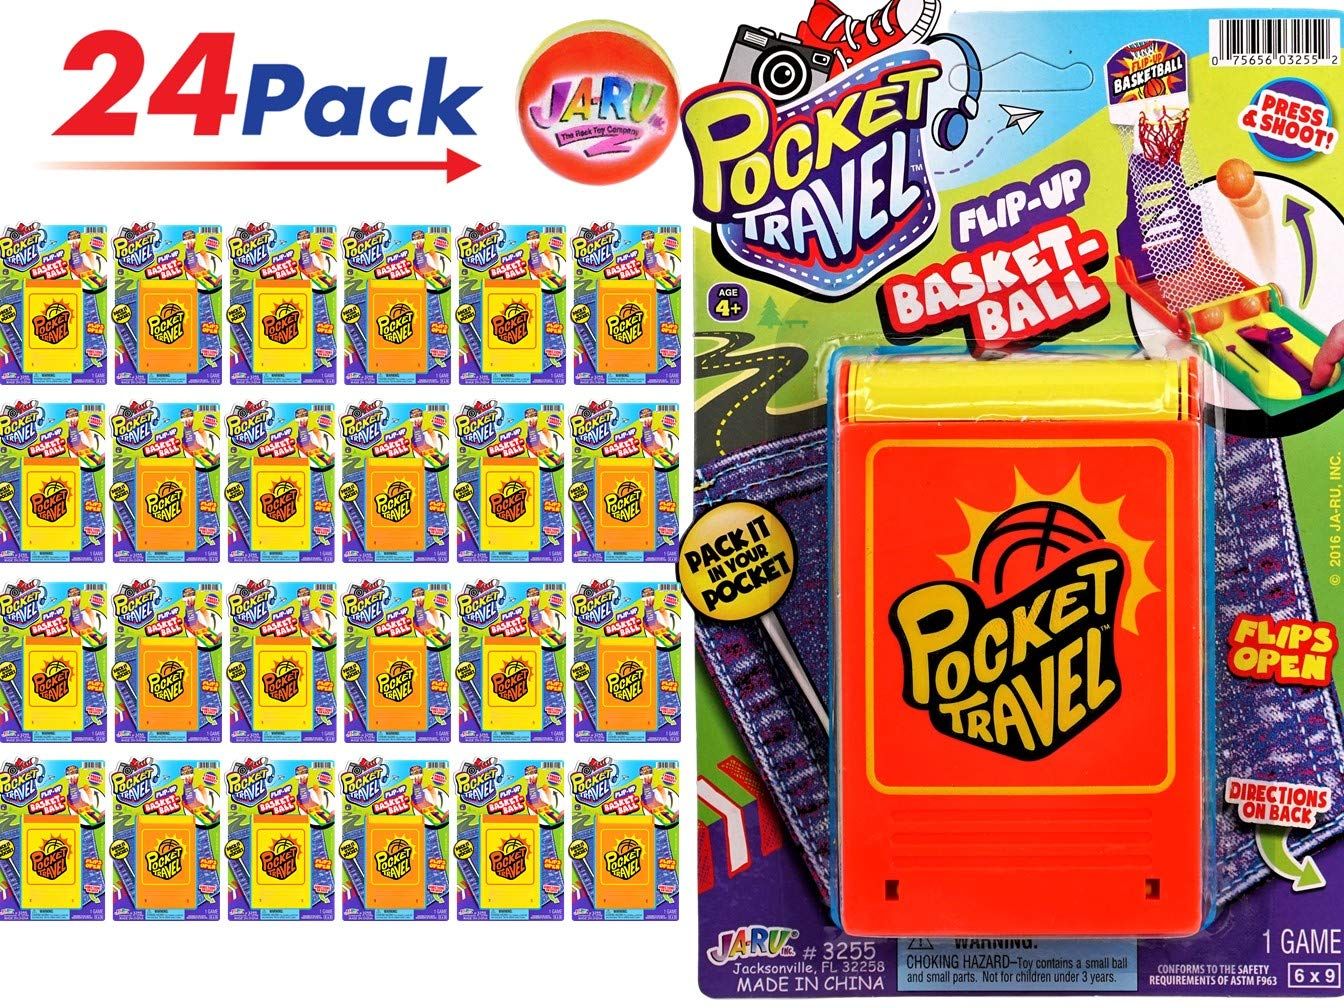 JA-RU Basketball Pocket Travel Game (24 Units) and 1 Bouncy Ball Item #3255-24p